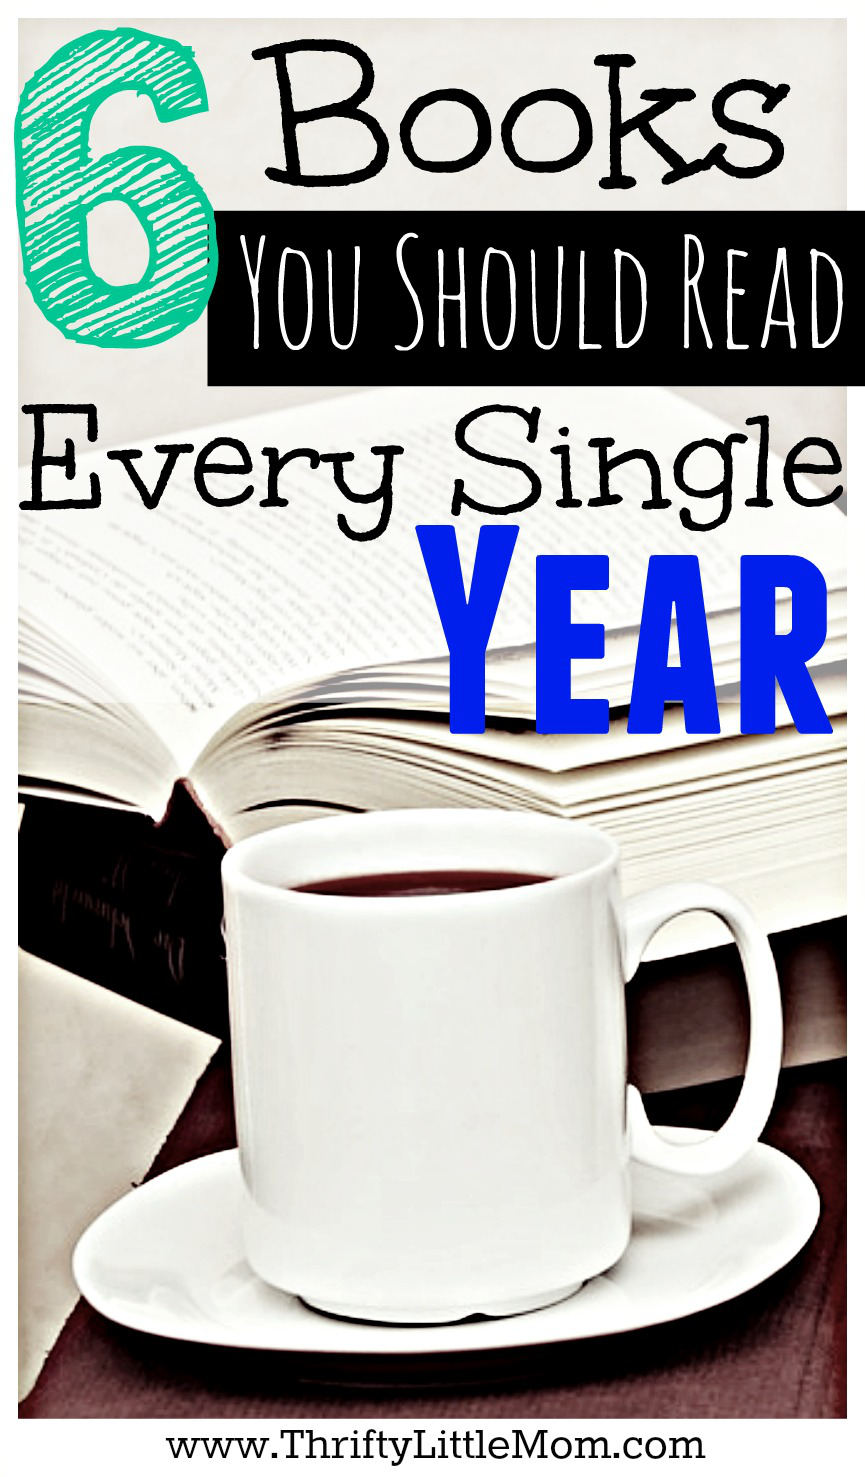 6 Books You Should Read Every Single Year. These six books are great to re-read each and every year to motivate and inspire you toward your goals financial and organization goals.